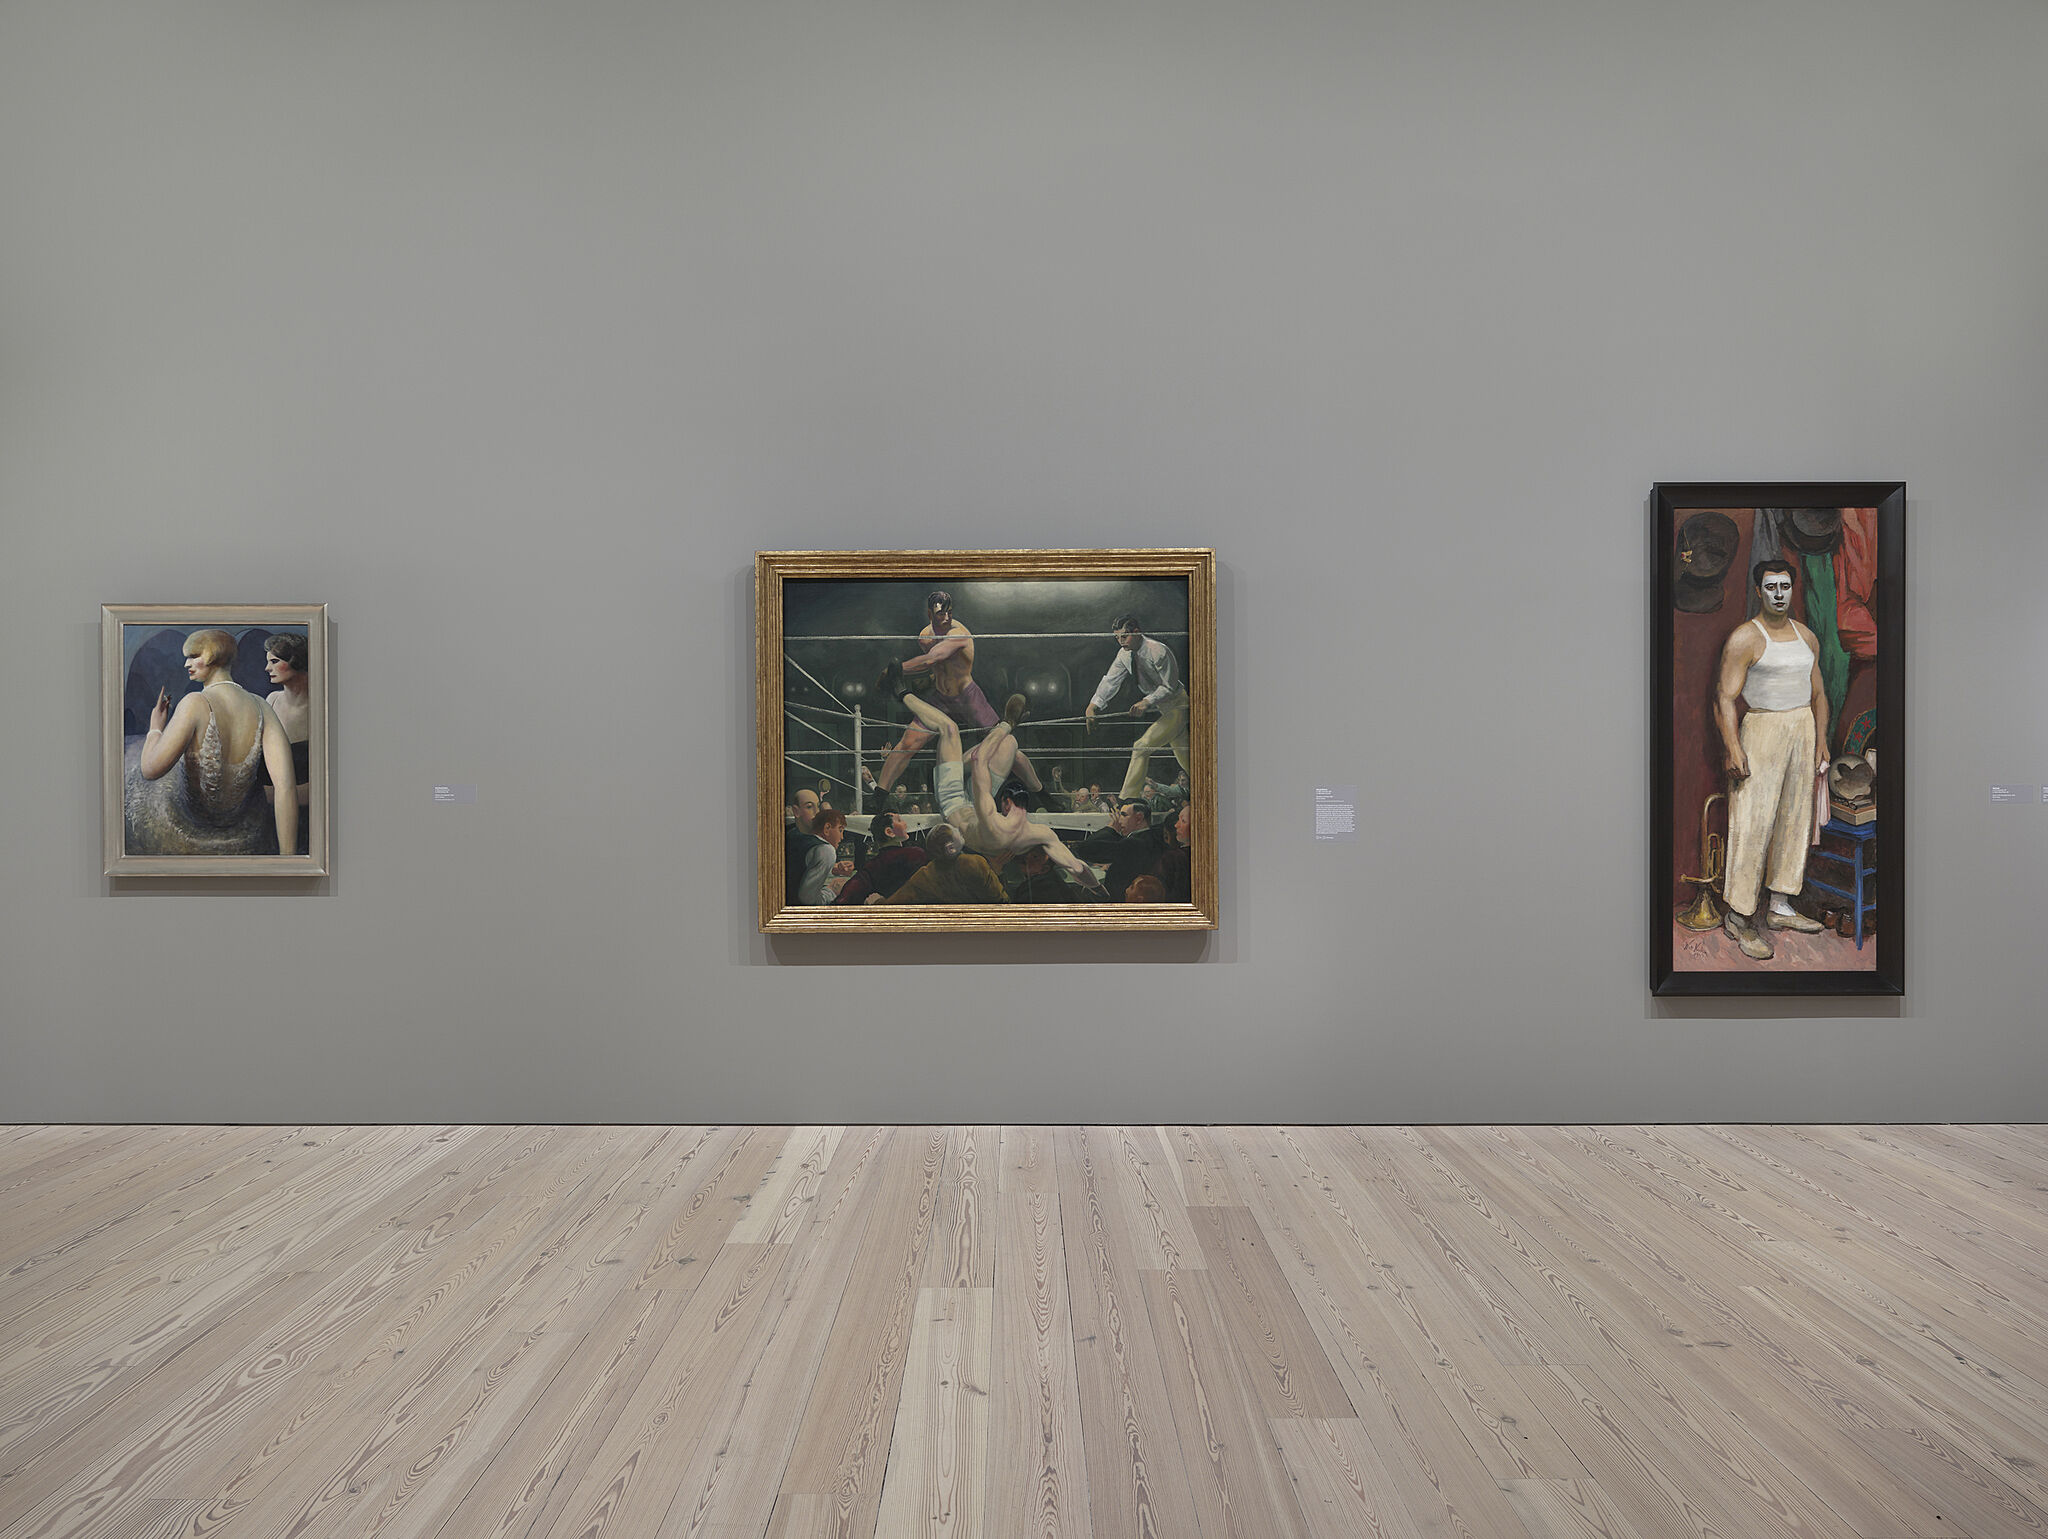 Three paintings on the walls of the Whitney.